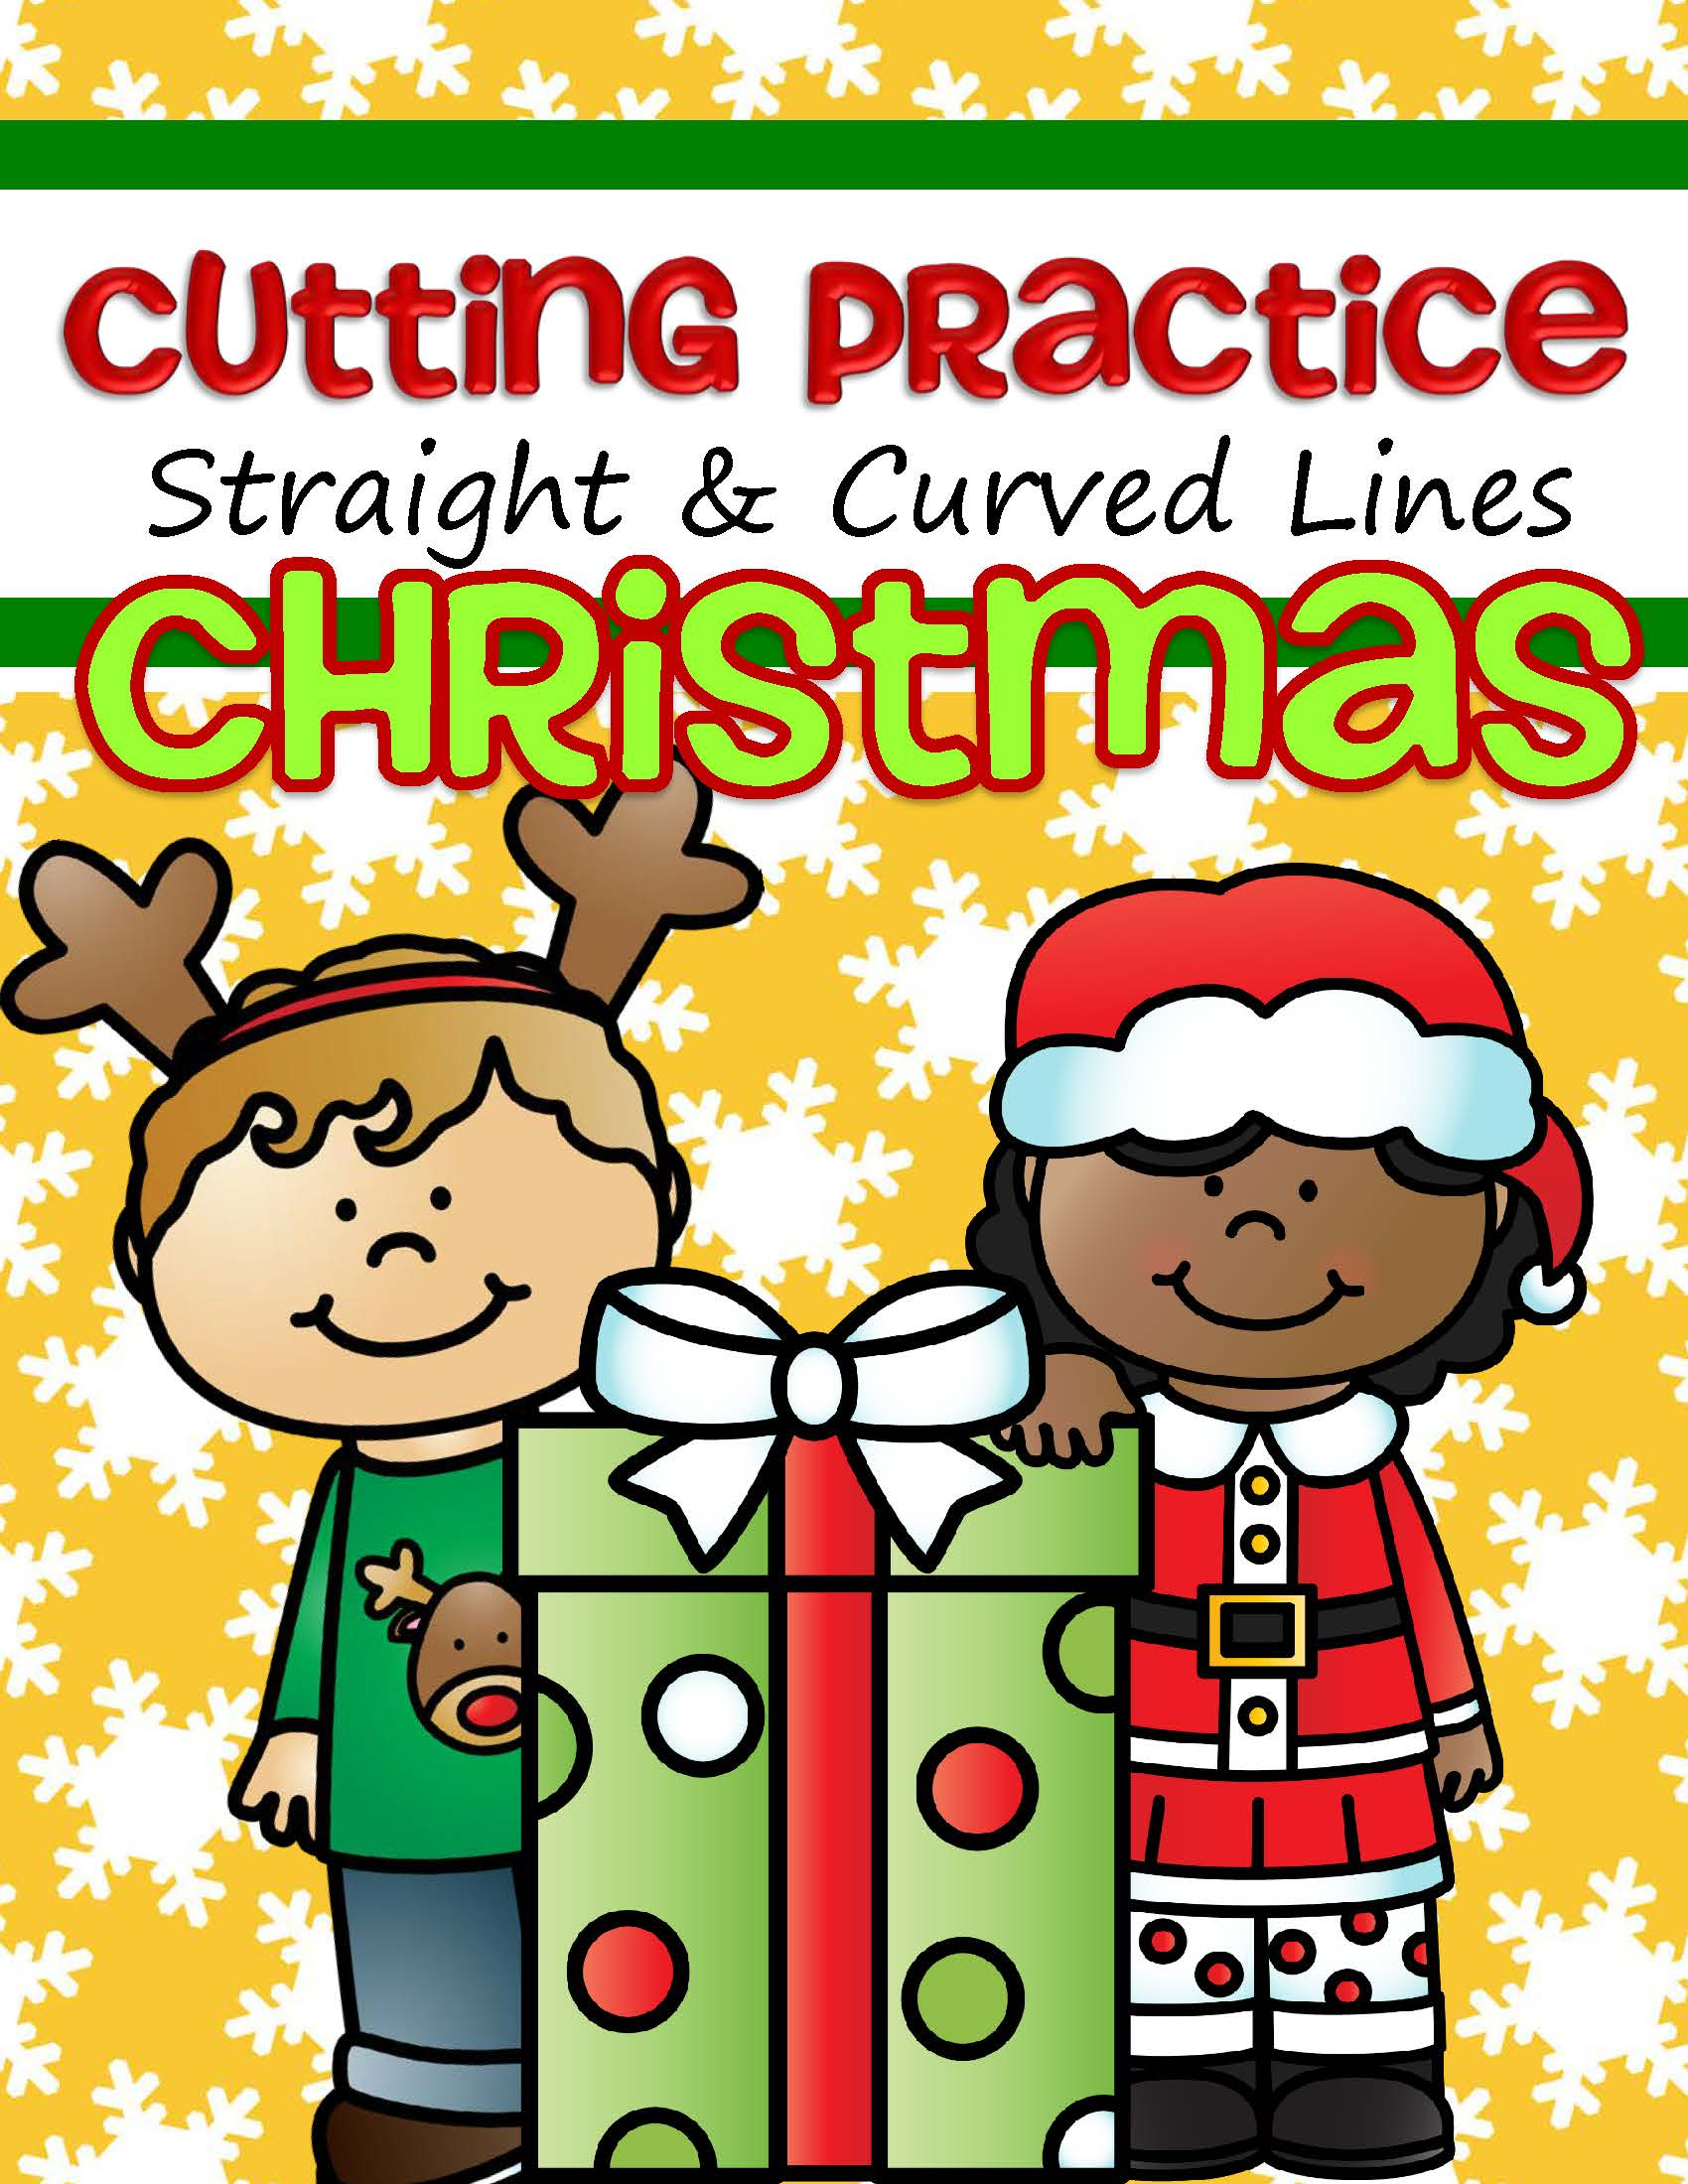 8 Christmas themed pages cutting straight and curved lines. After cutting, make collages and puzzles.